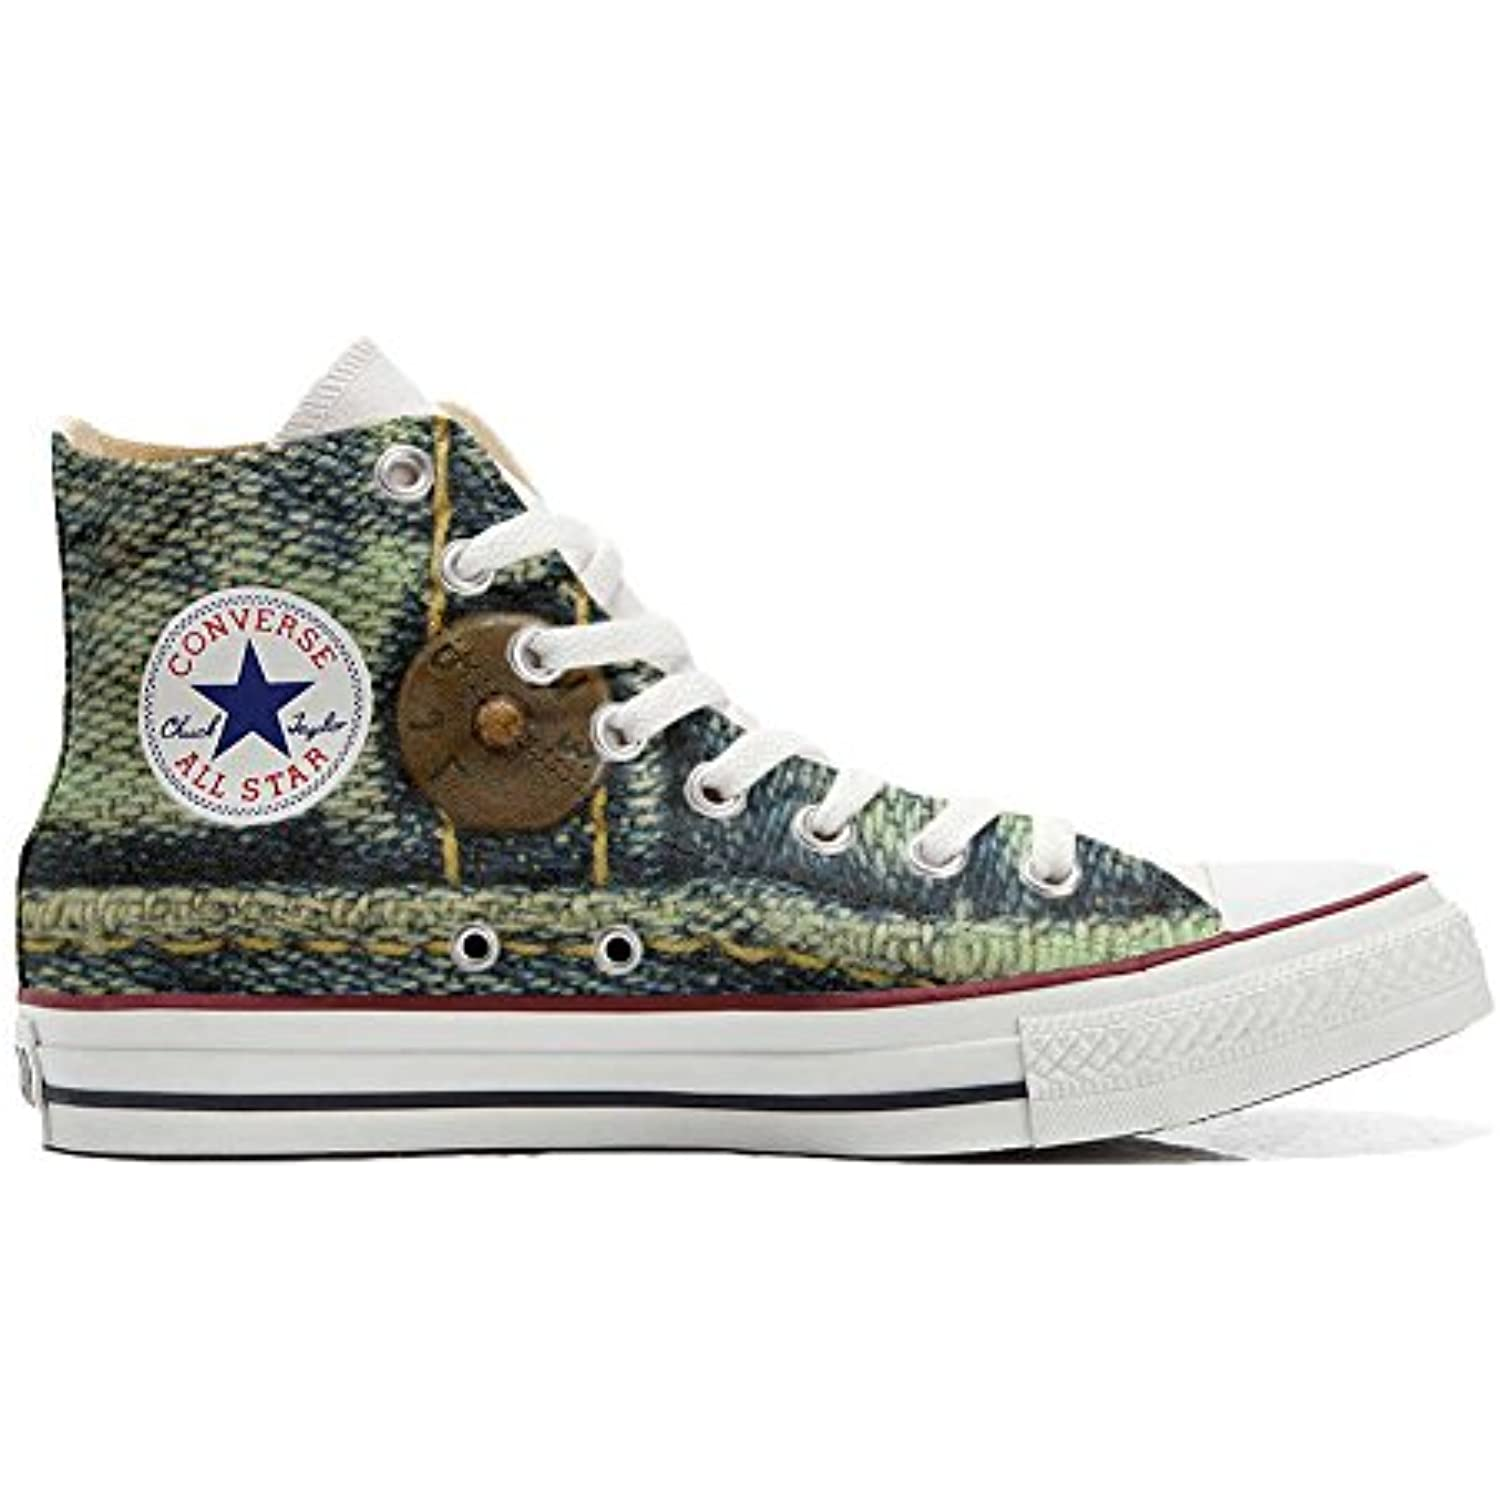 mys Chuck Taylor, Chaussons Montants Montants Montants Femme - B01N9SMGA8 - bc56f8